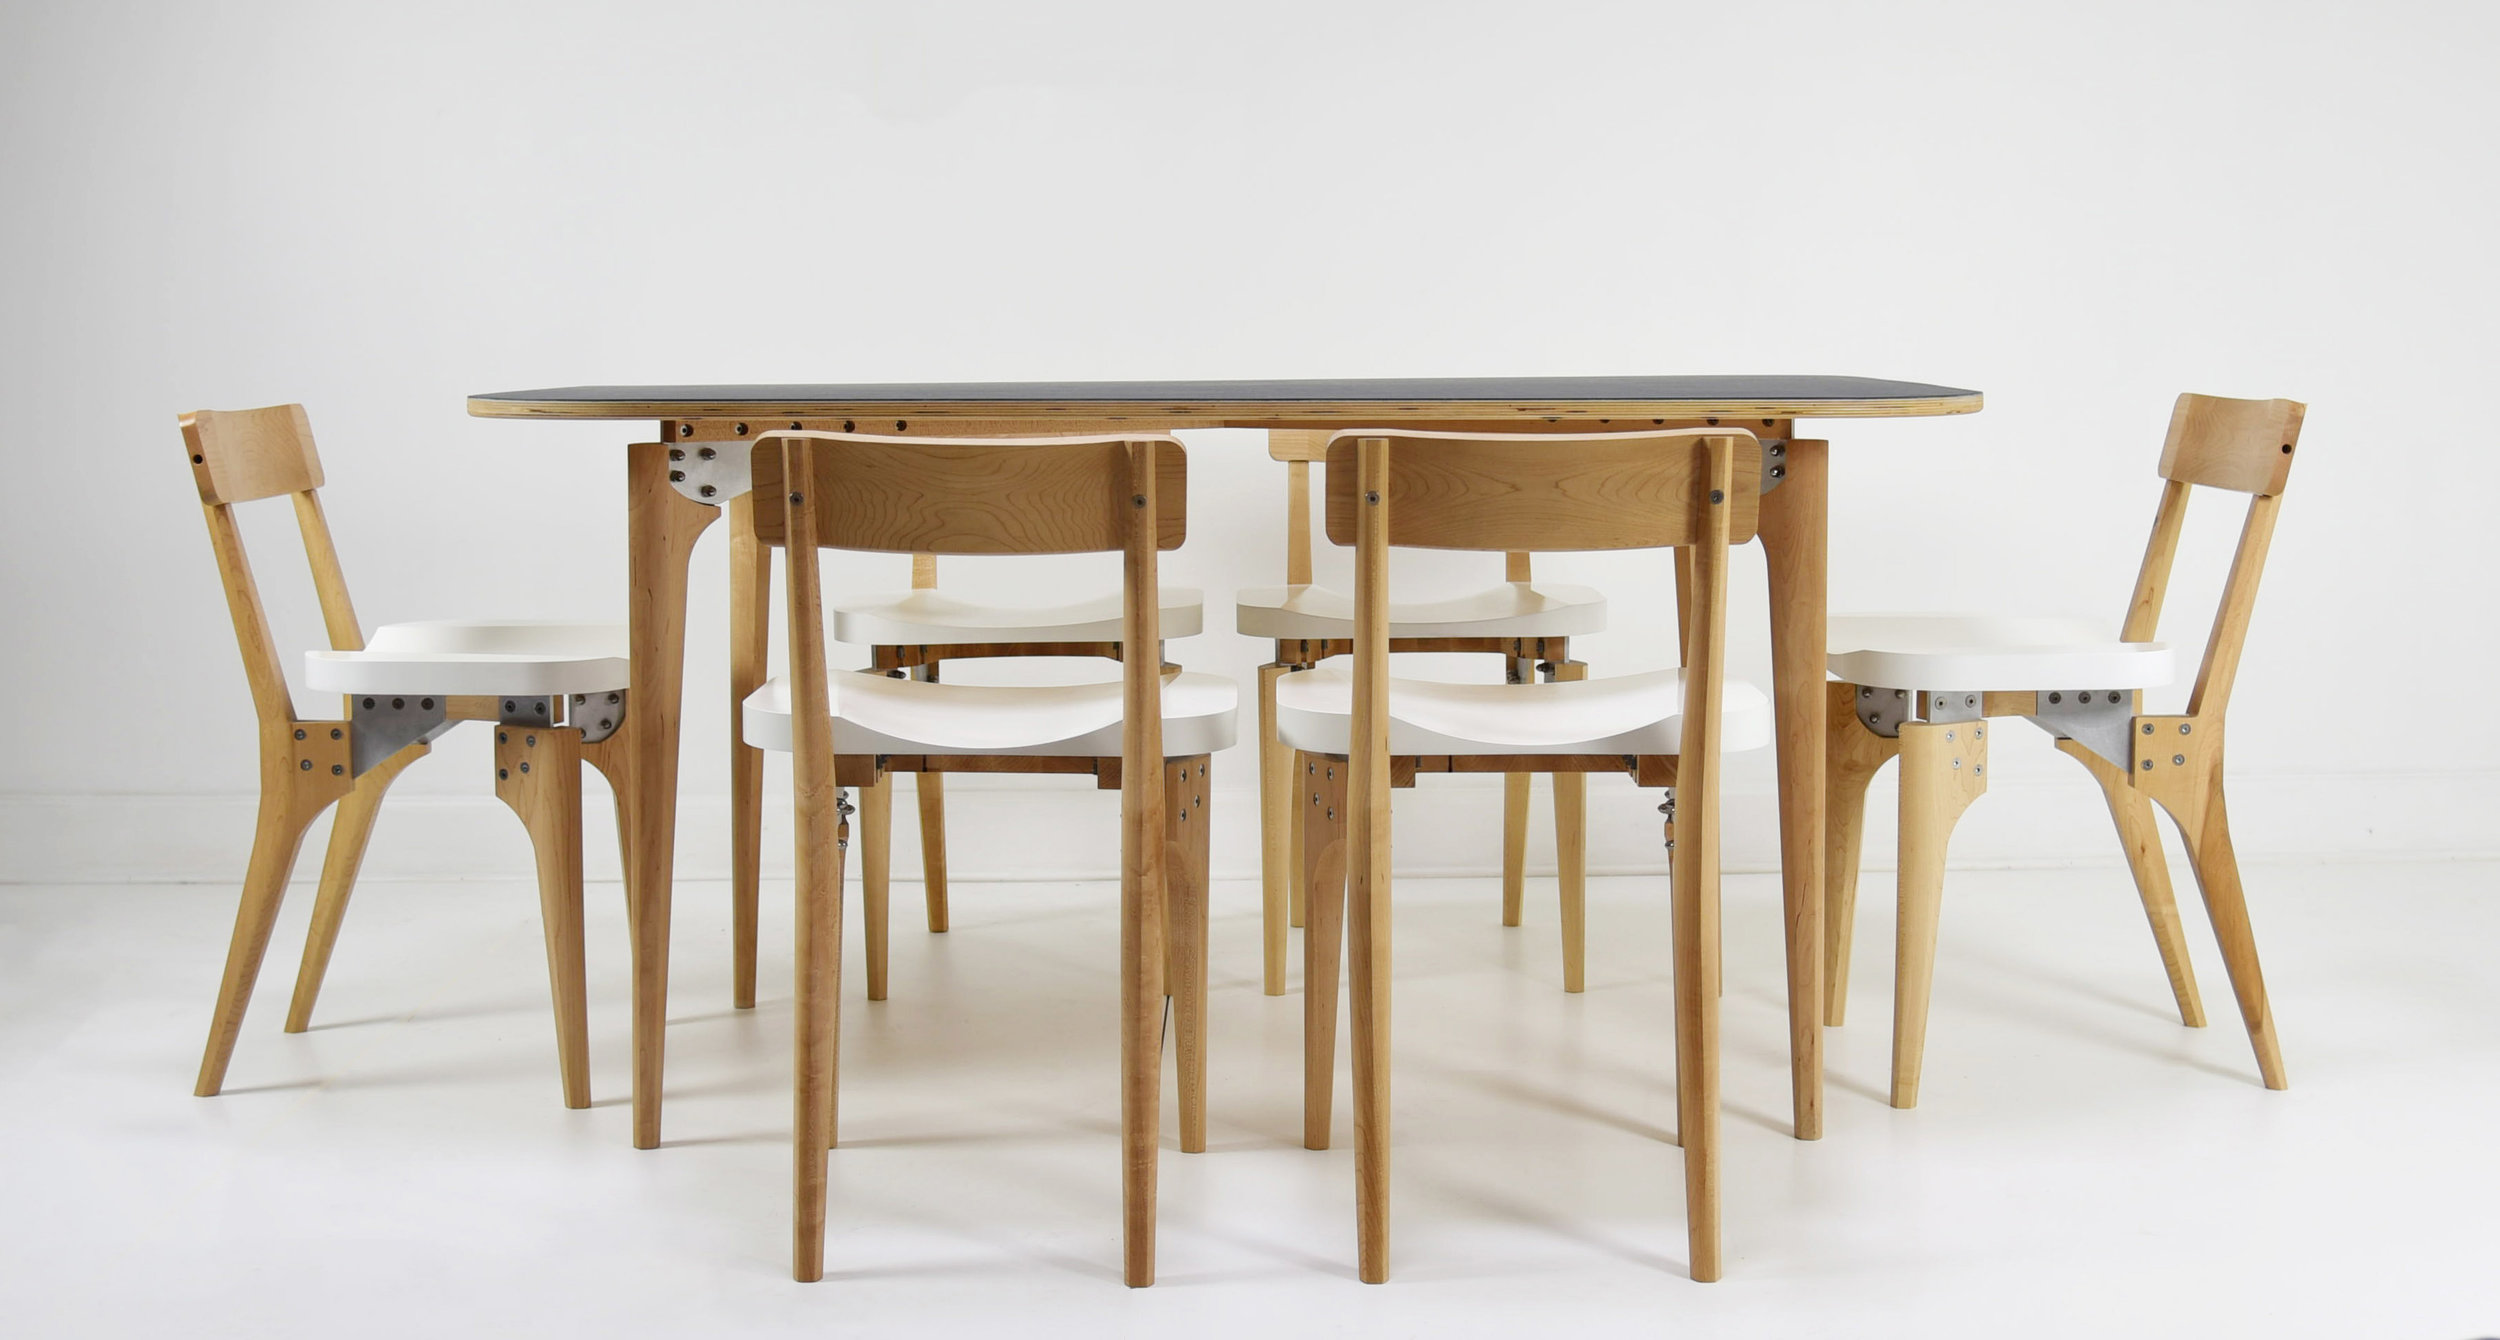 The Lofted Dining Table with Butcher Block Chairs from KHEM Studios